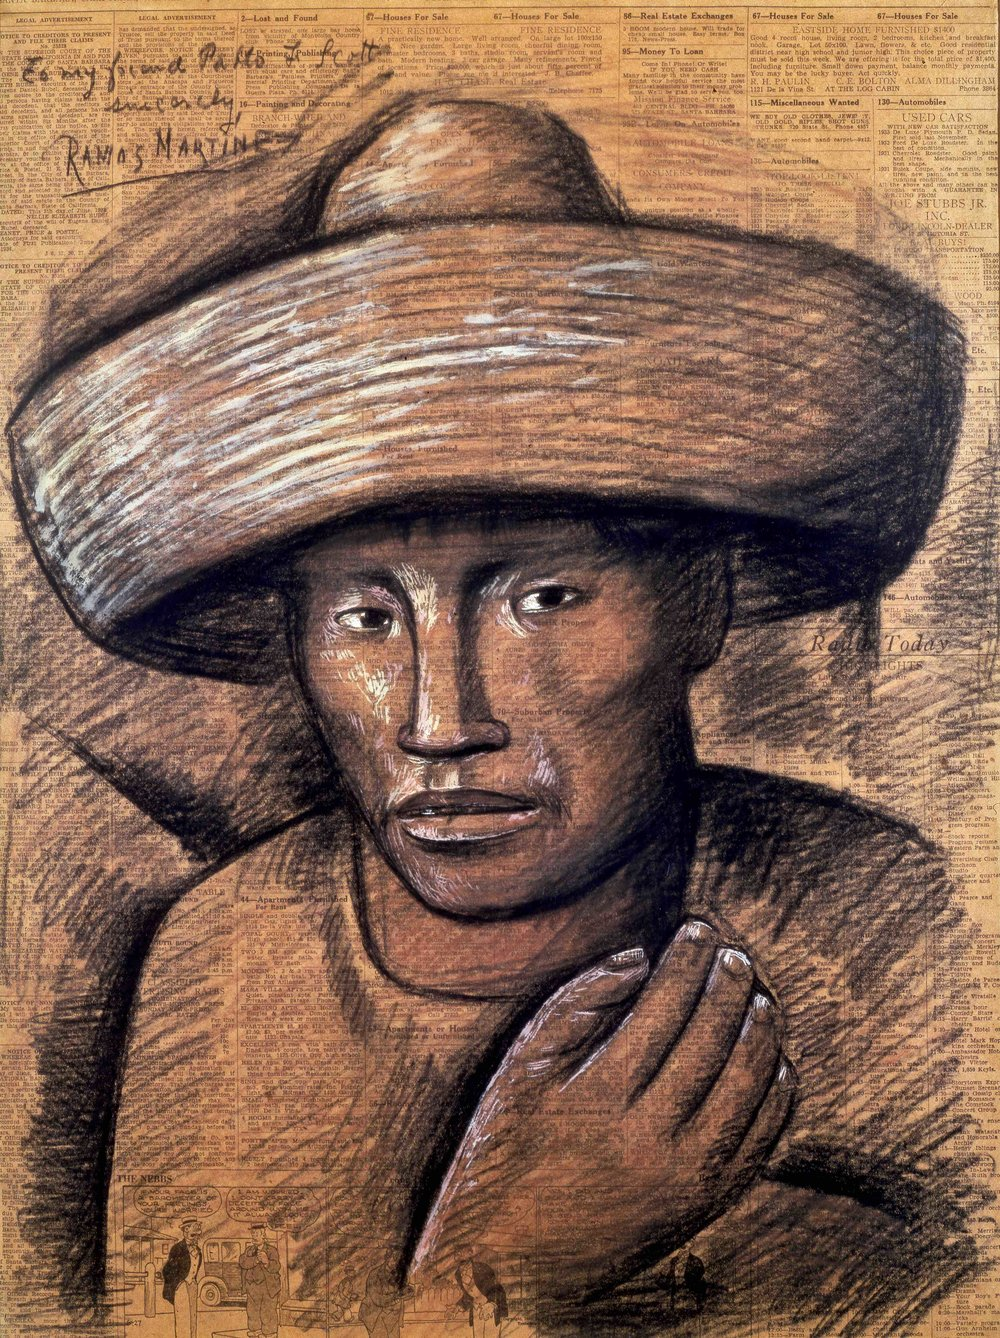 Hombre con Sombrero / Man with Hat  1934 crayon and tempera on newsprint mounted on paper / crayon y temple sobre papel periódico sobre papel ( Santa Barbara News-Press , June 5, 1934) 22.8 x 17 inches; 57.8 x 43.2 centímetros Private collection